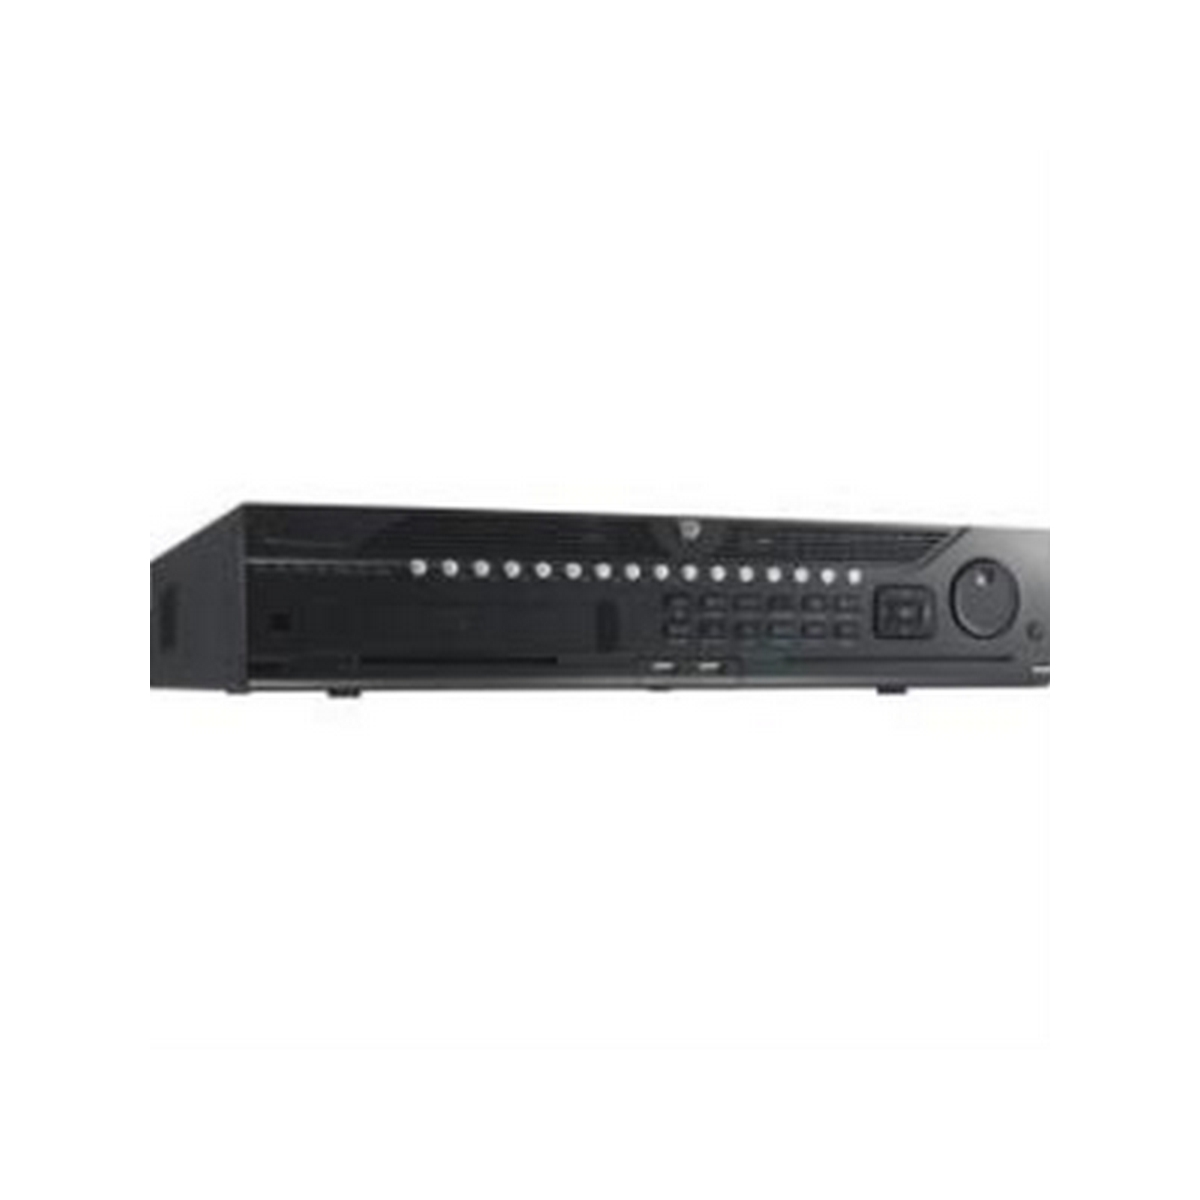 NVR,  16-Channel, H264, up to 6MP,  HDMI, 8-SATA, No HDD